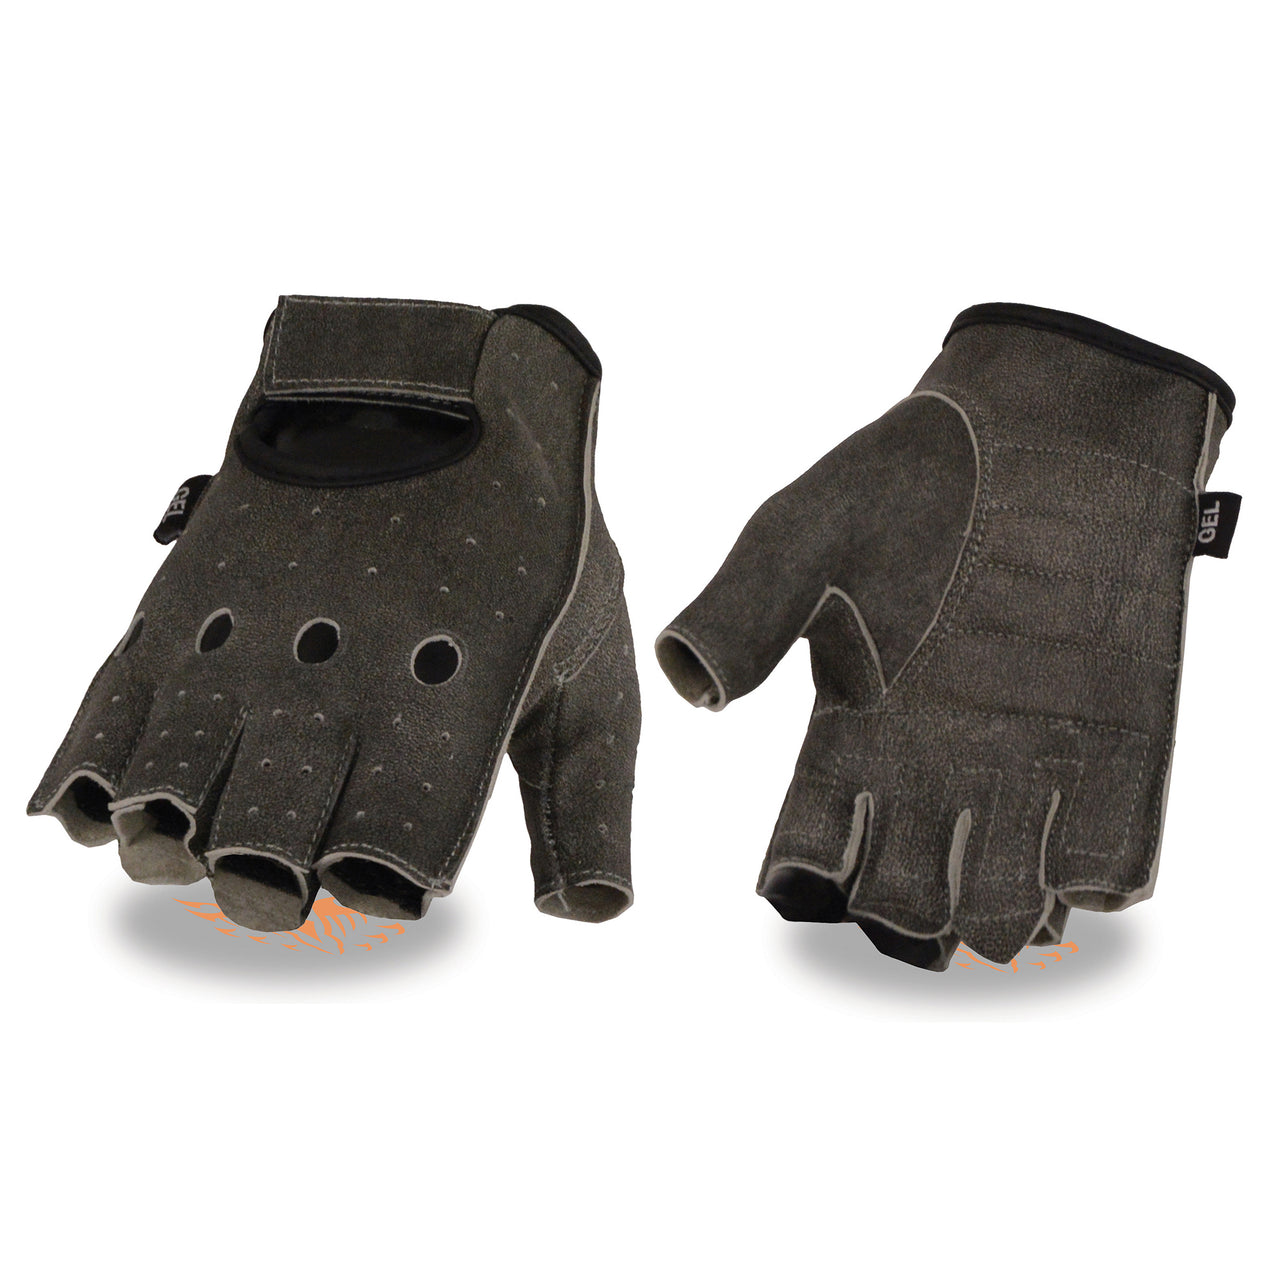 Men's Distressed Gray Leather Fingerless Gloves w/ Gel Padded Palm - HighwayLeather